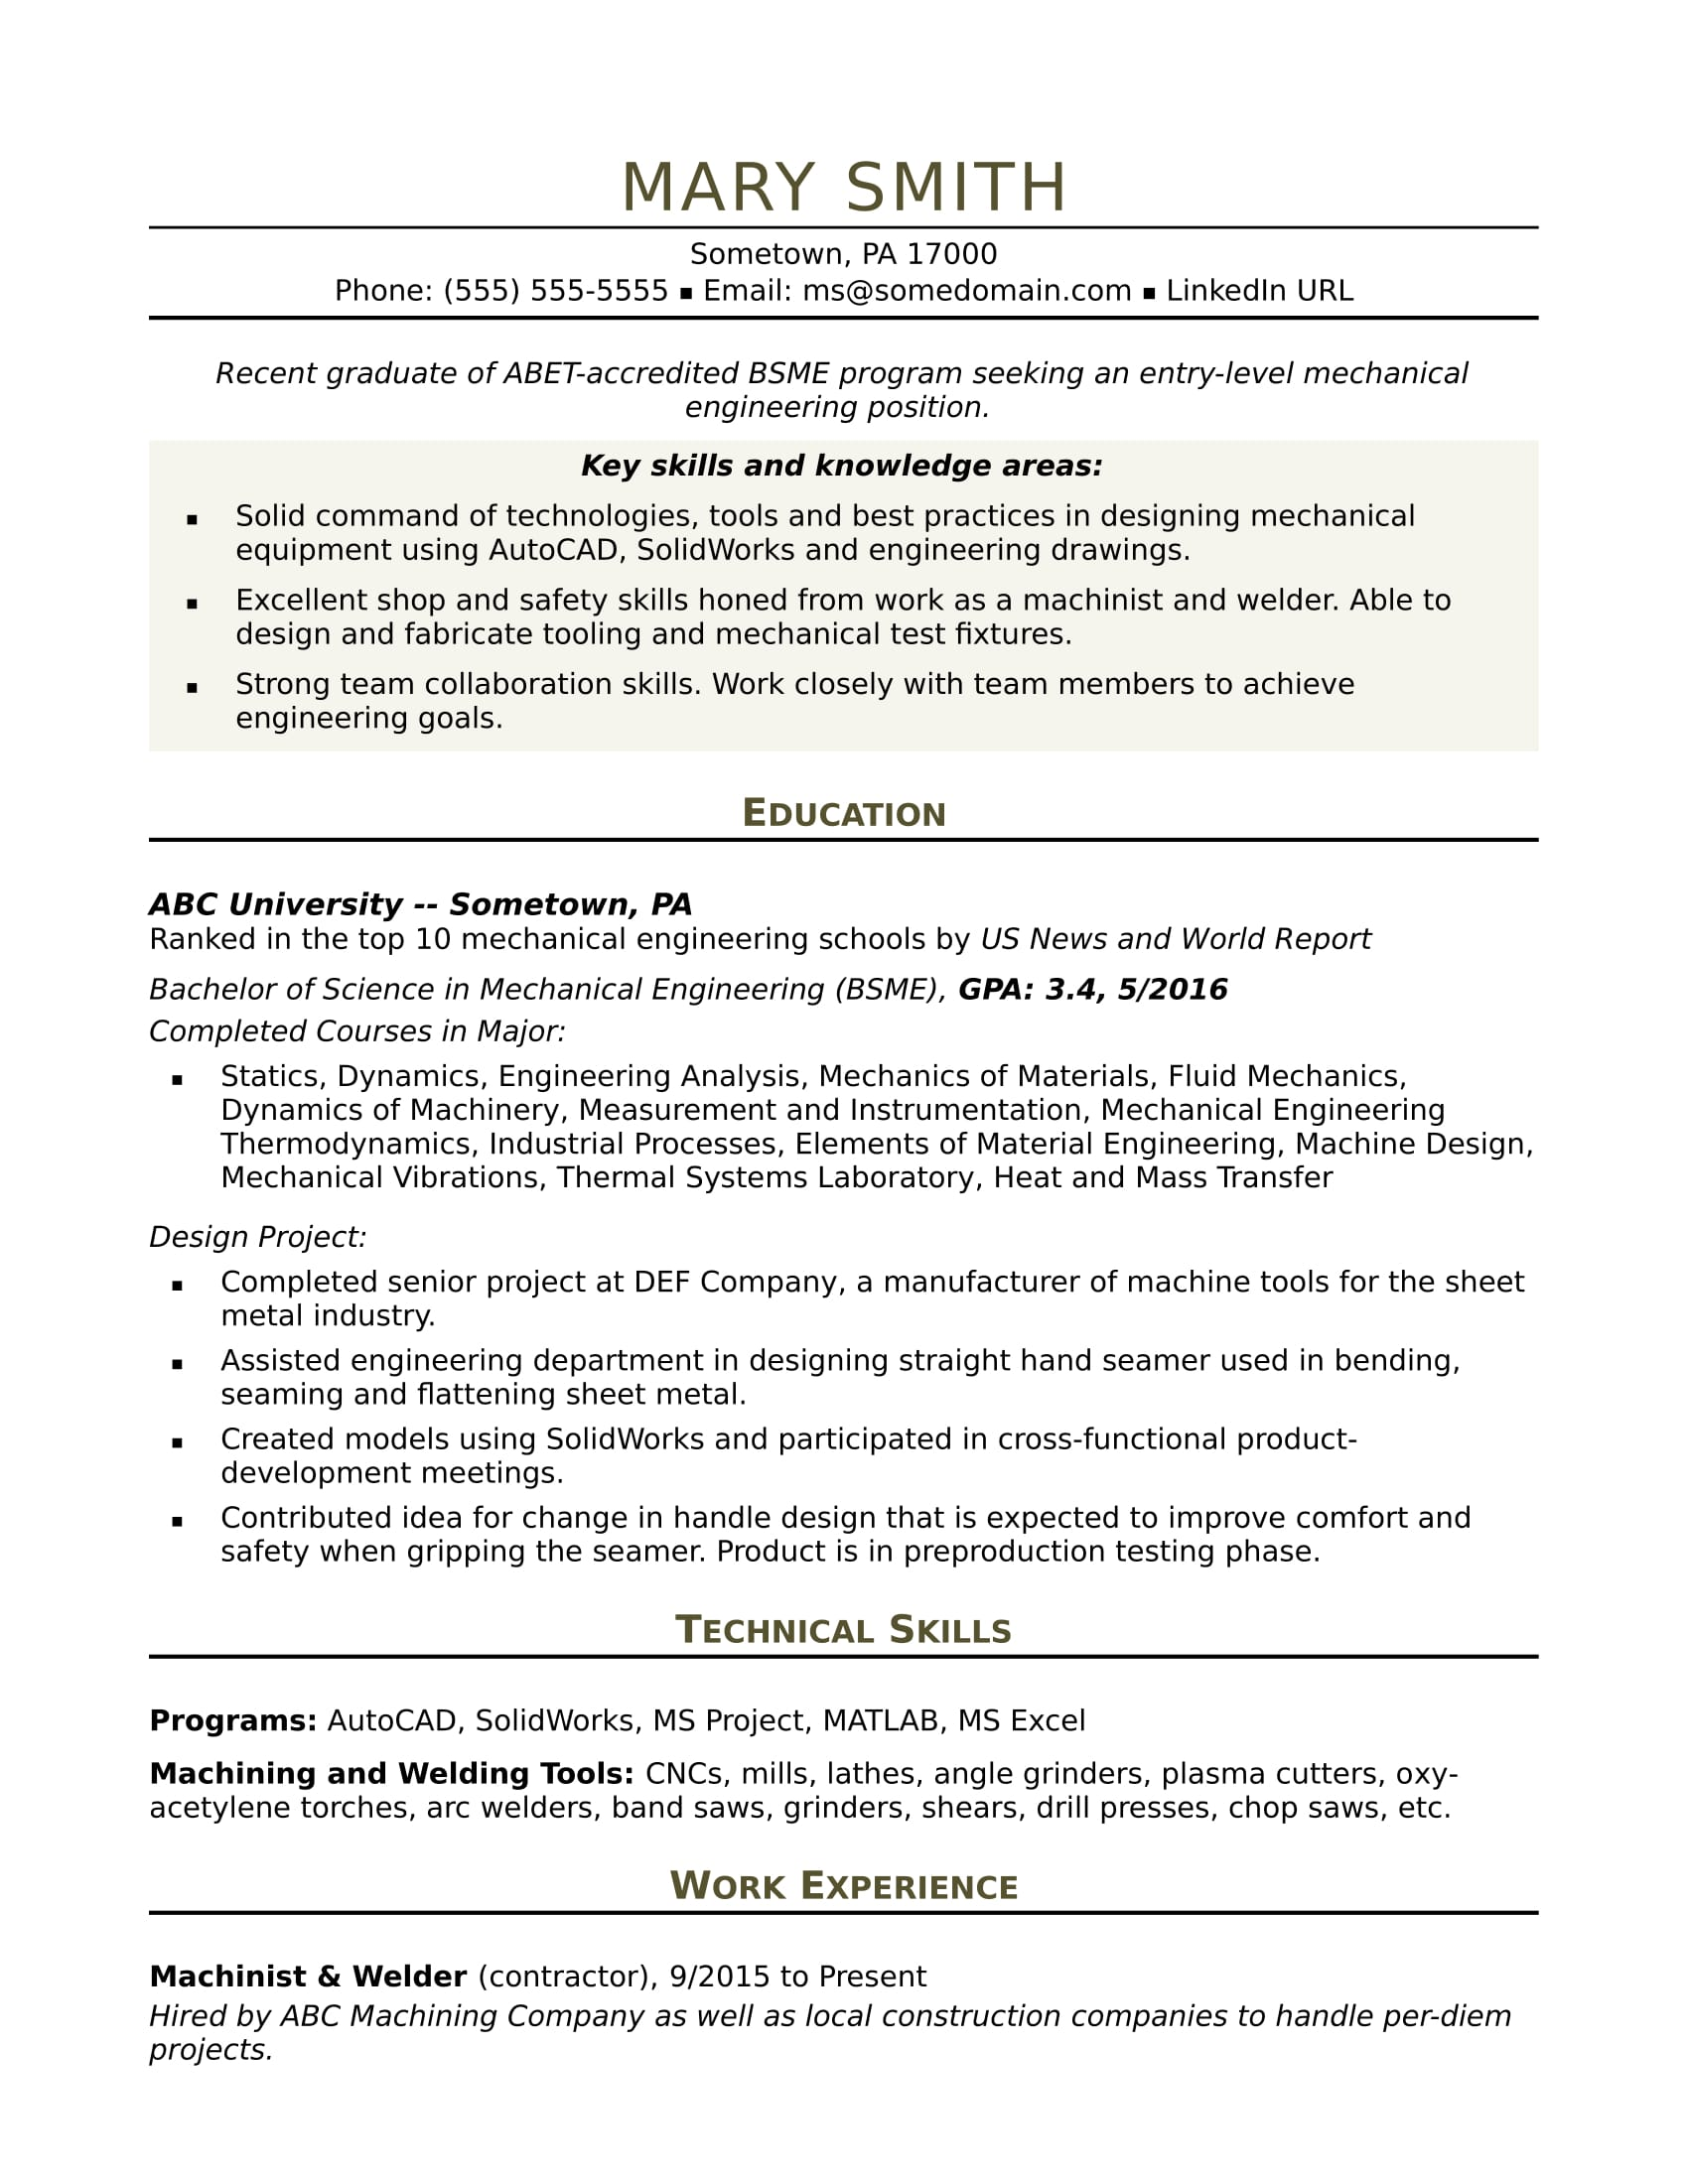 Resume Format For Experienced Mechanical Engineer India لم يسبق له